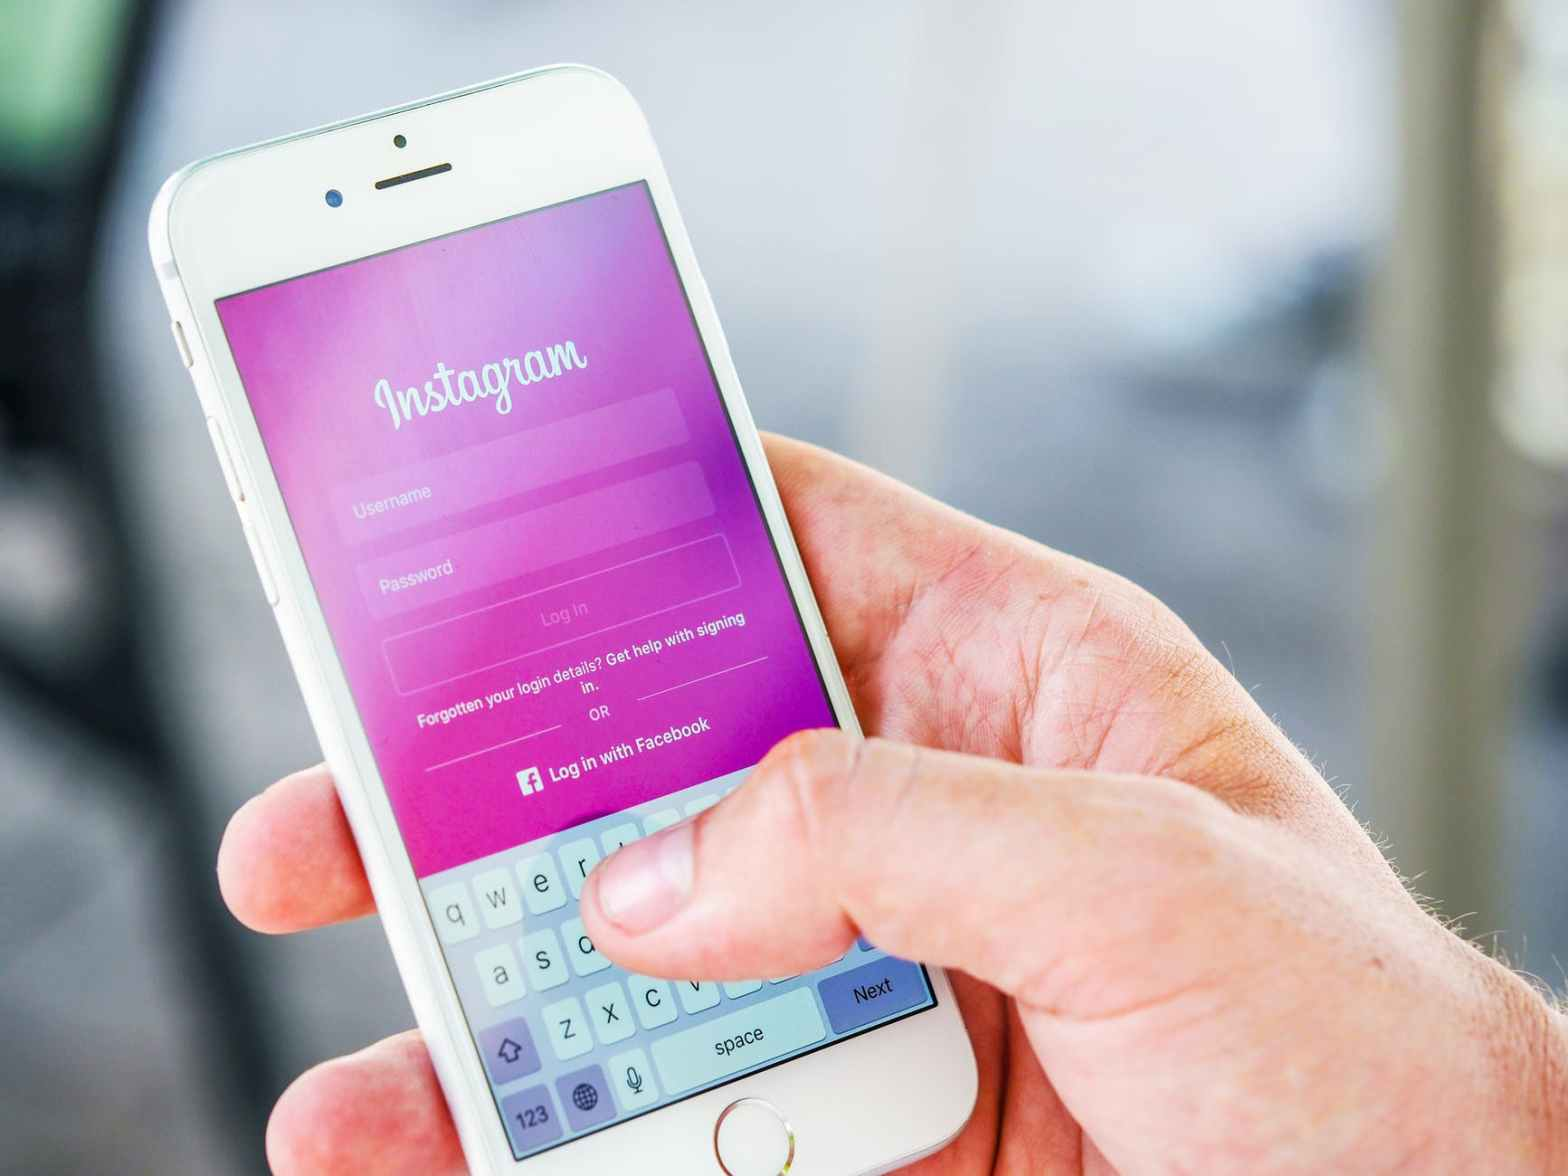 improve your social media presence: smartphone with instagram app pulled up on screen